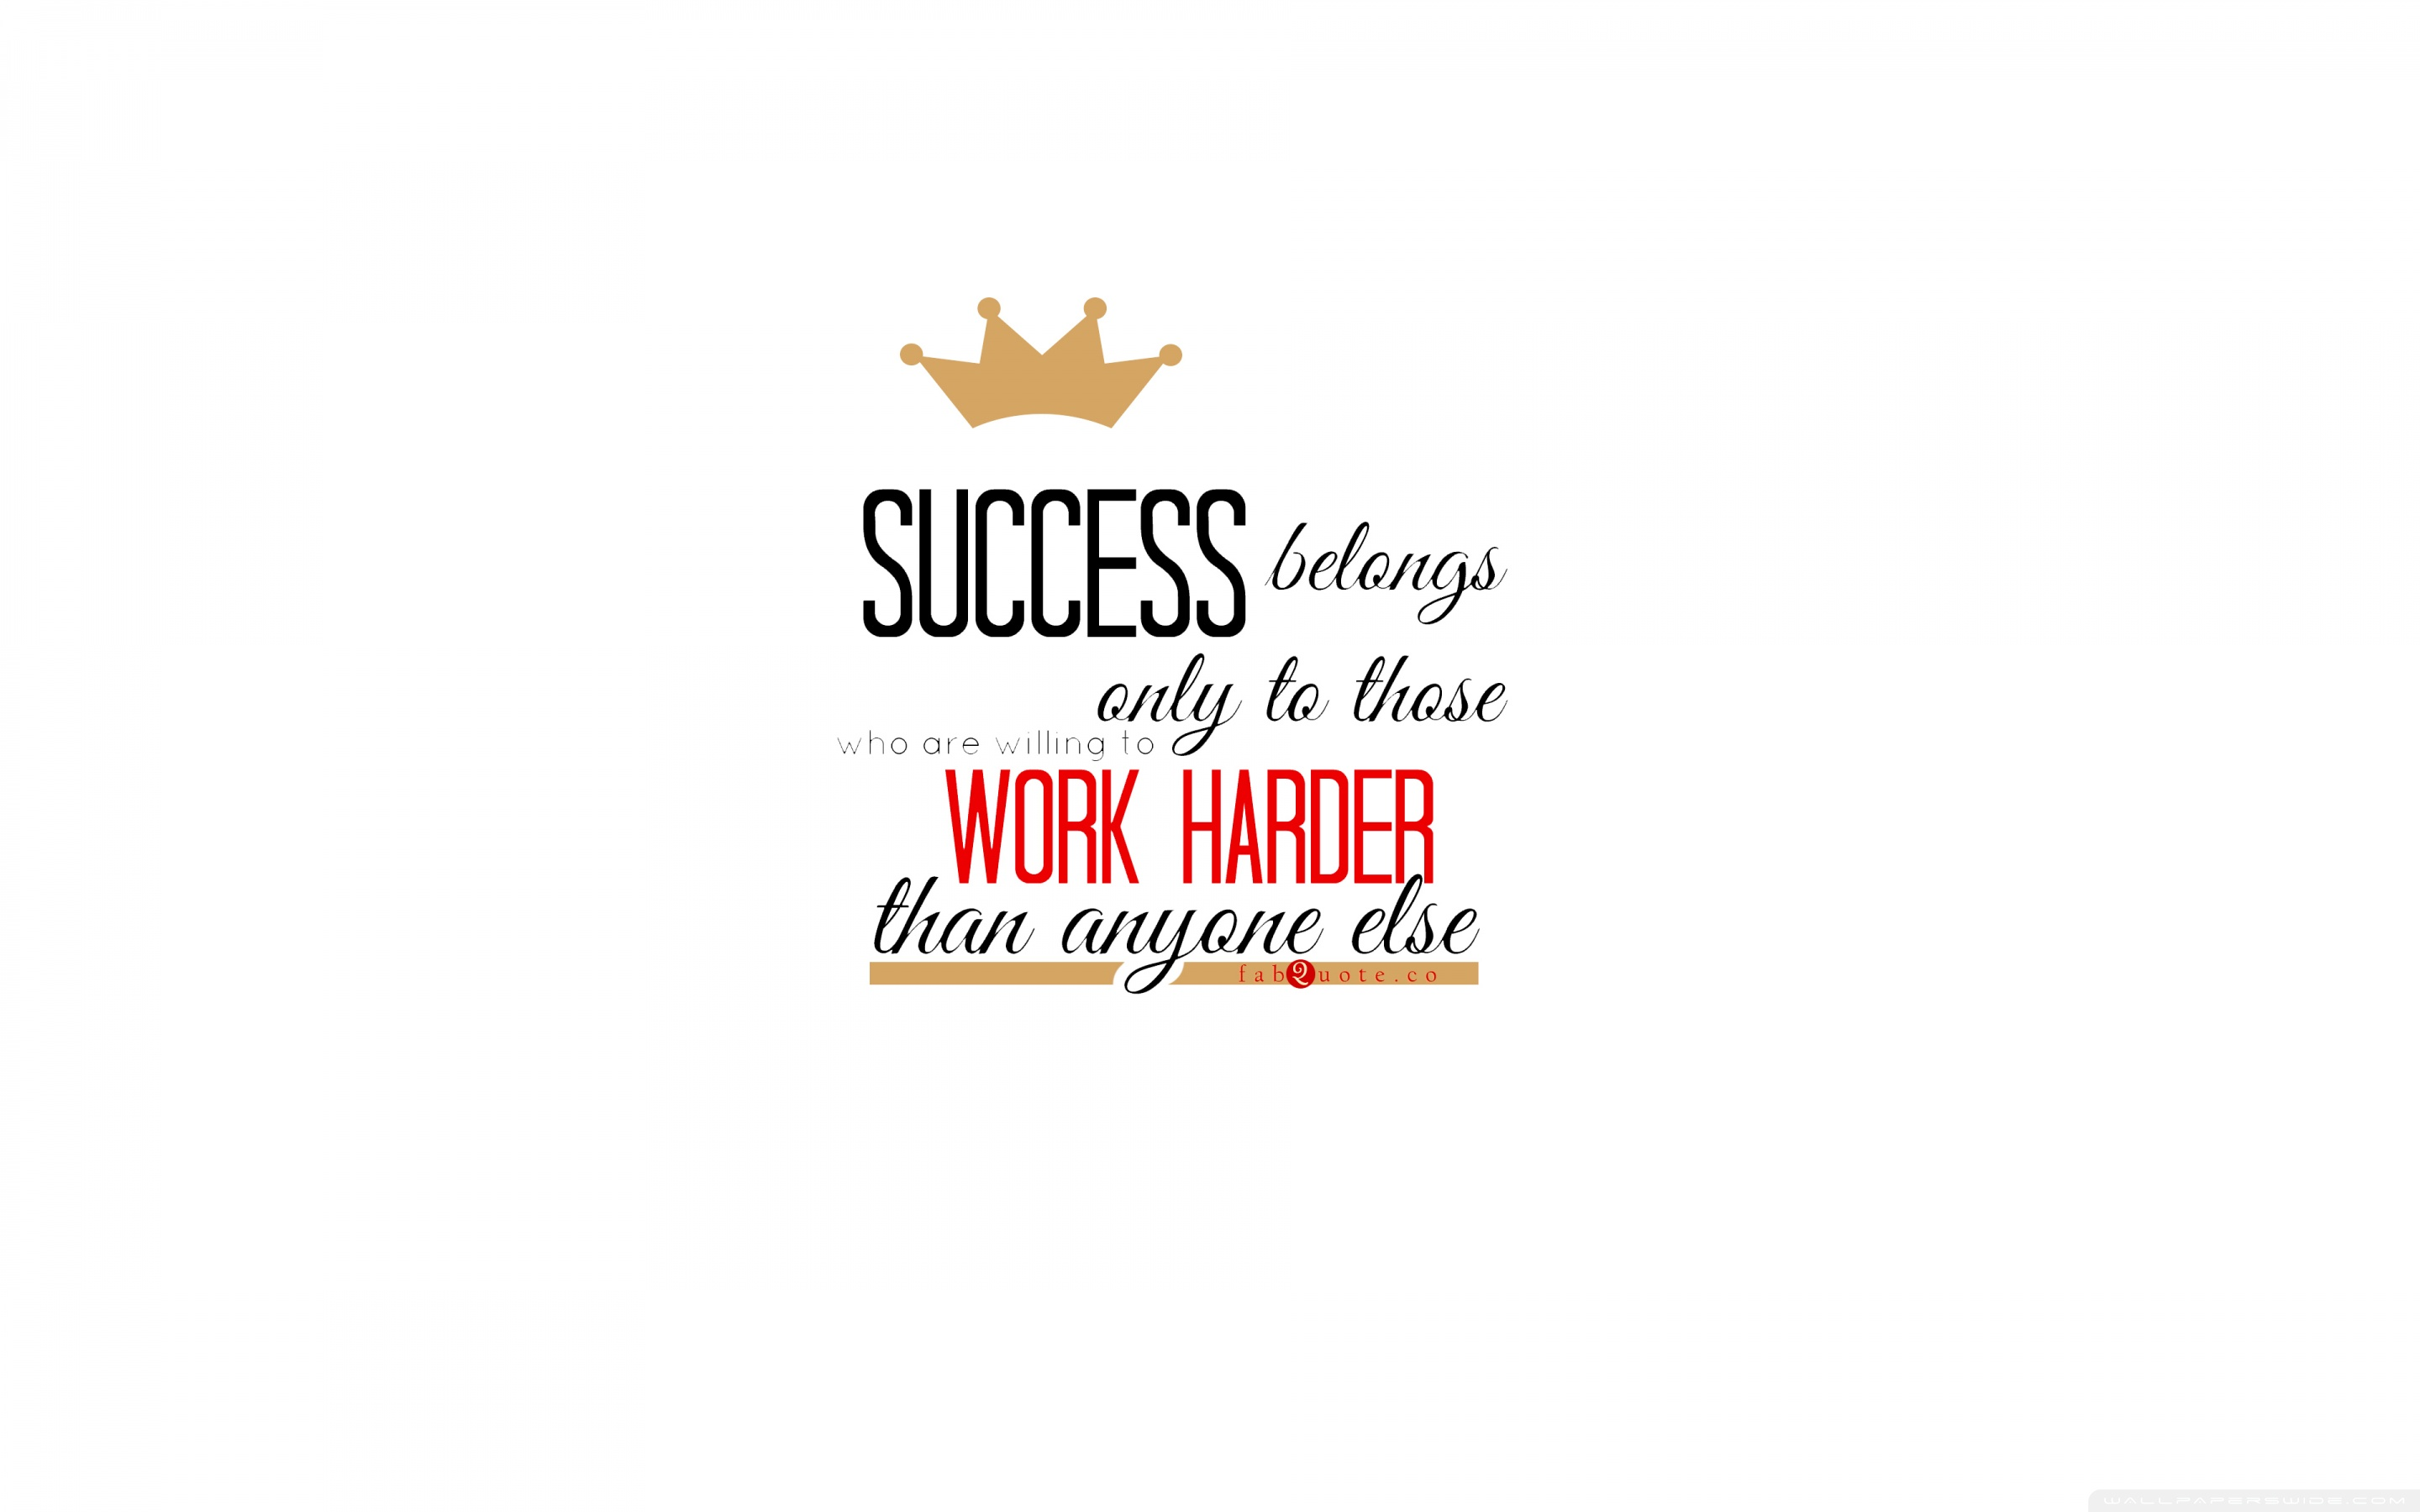 Quote About Success 4k Hd Desktop Wallpaper For 4k Ultra